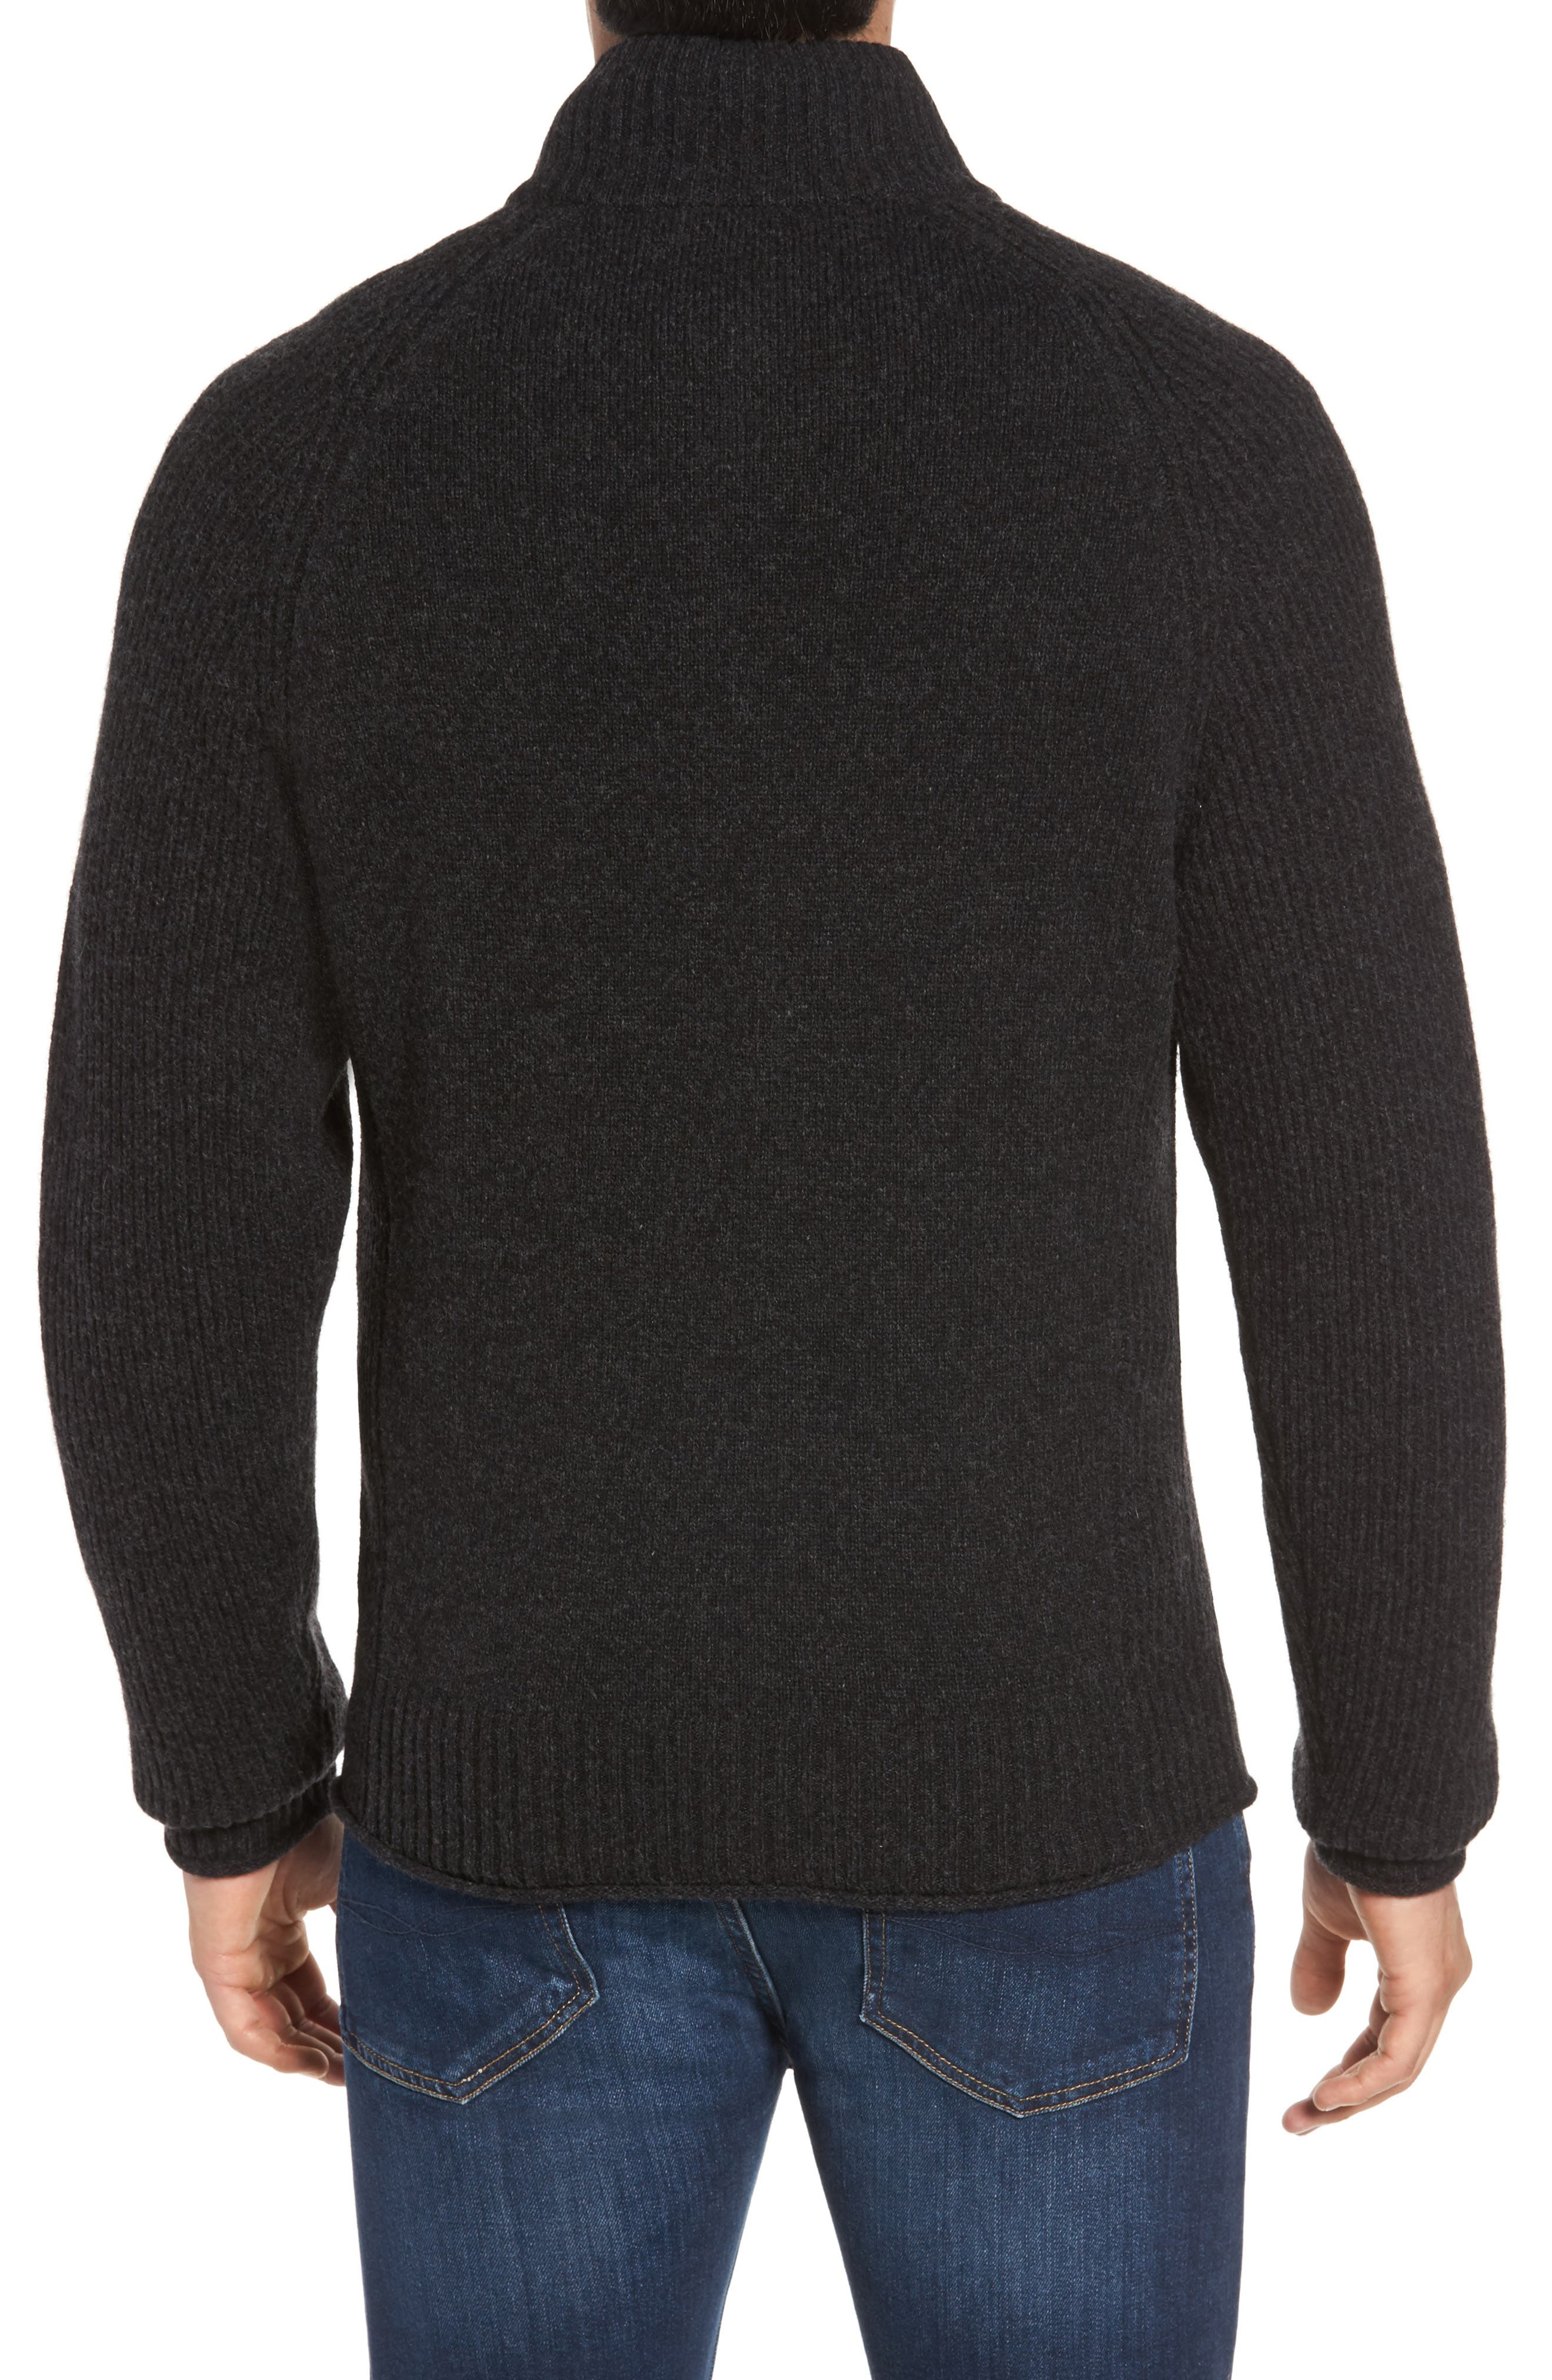 Stredwick Lambswool Sweater,                             Alternate thumbnail 6, color,